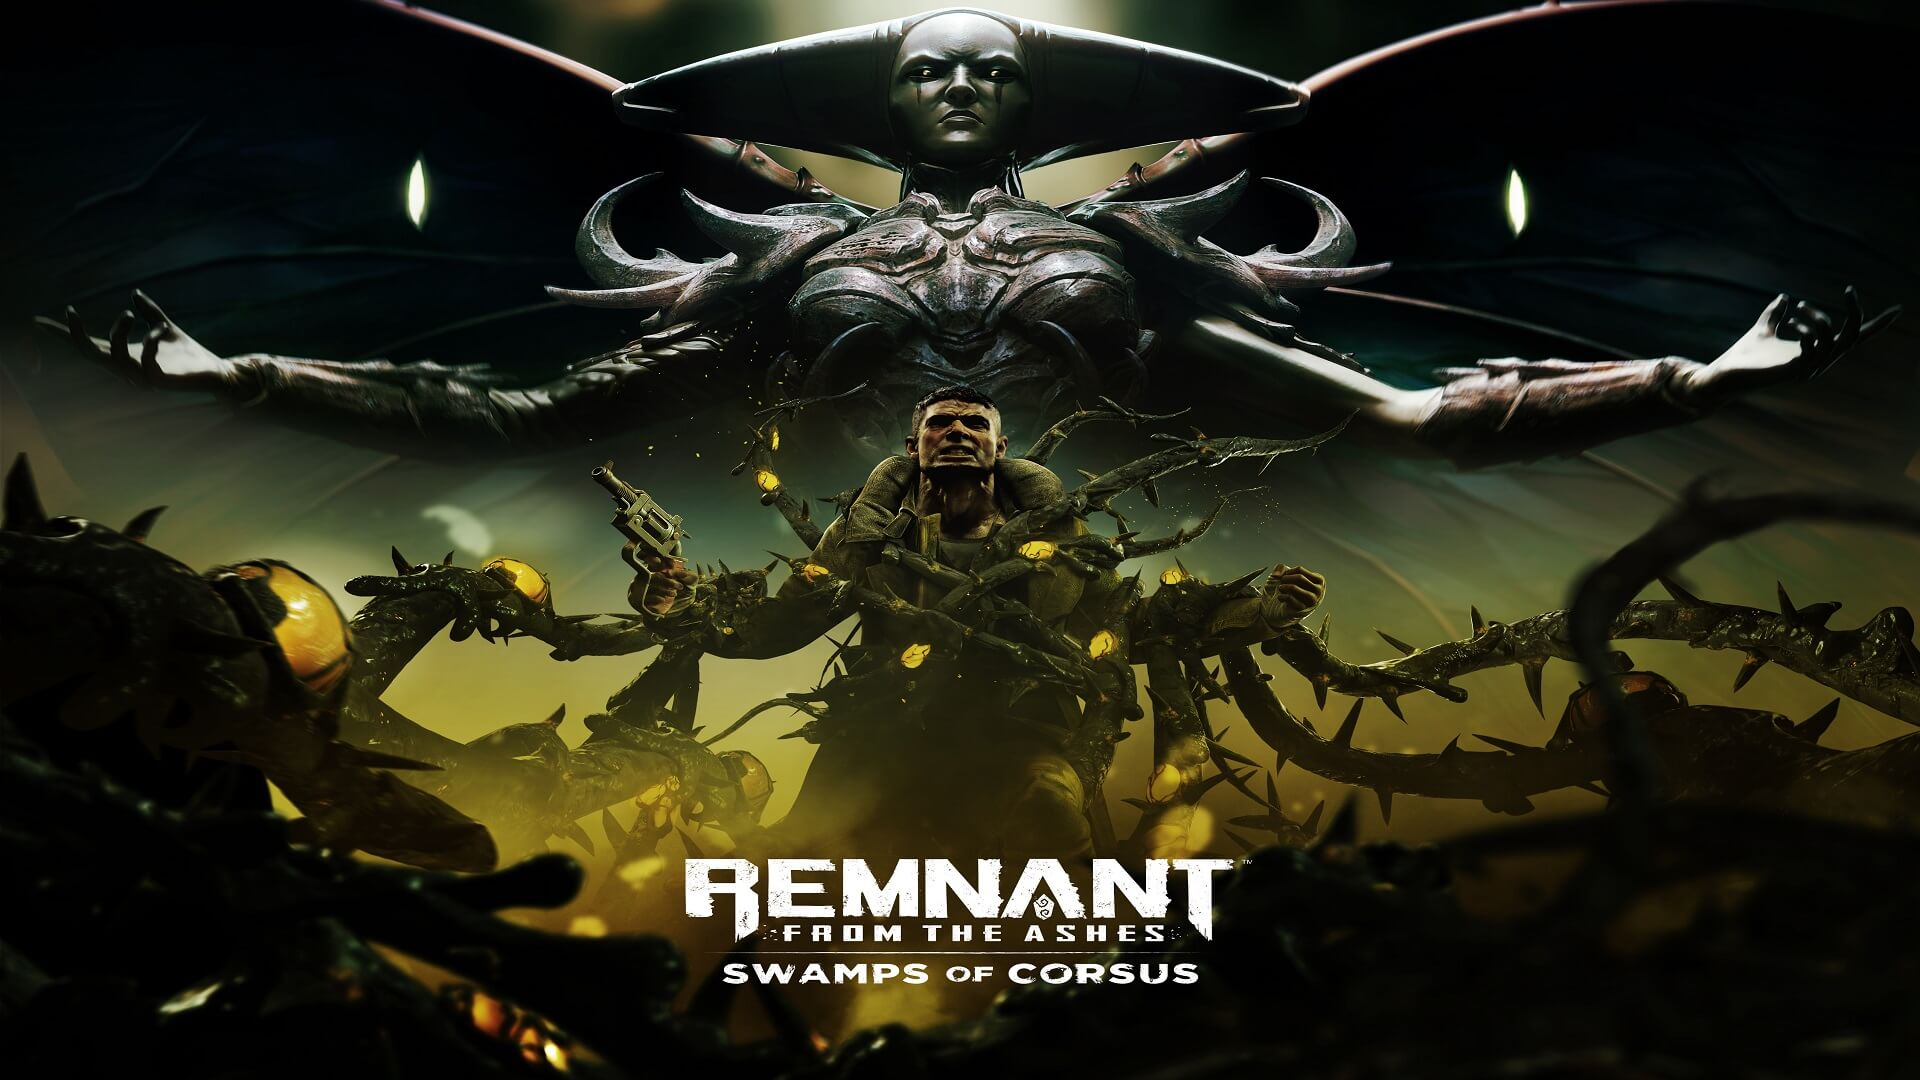 Remnant From the Ashes - Swamps of Corsus Review: Corsus Carnage